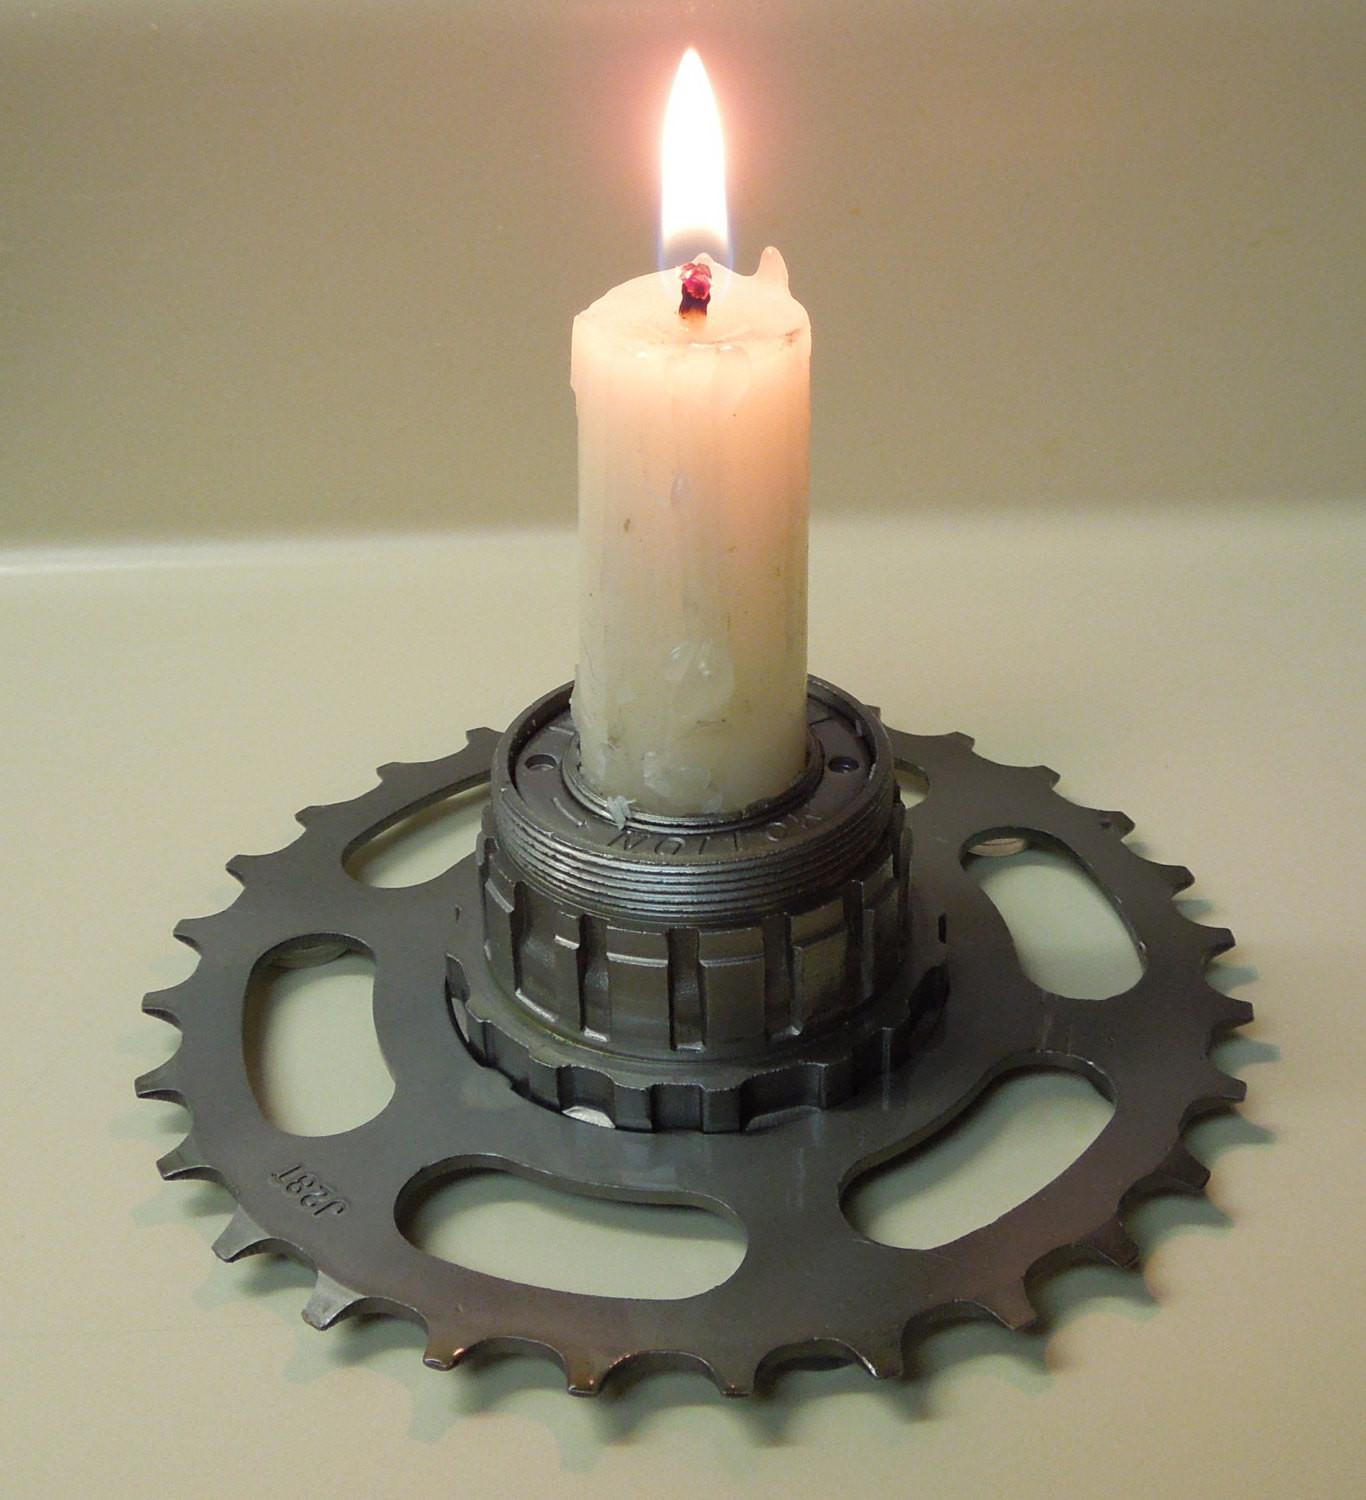 Repurposed Candle Holder Bicycle Hub Mounted Gear